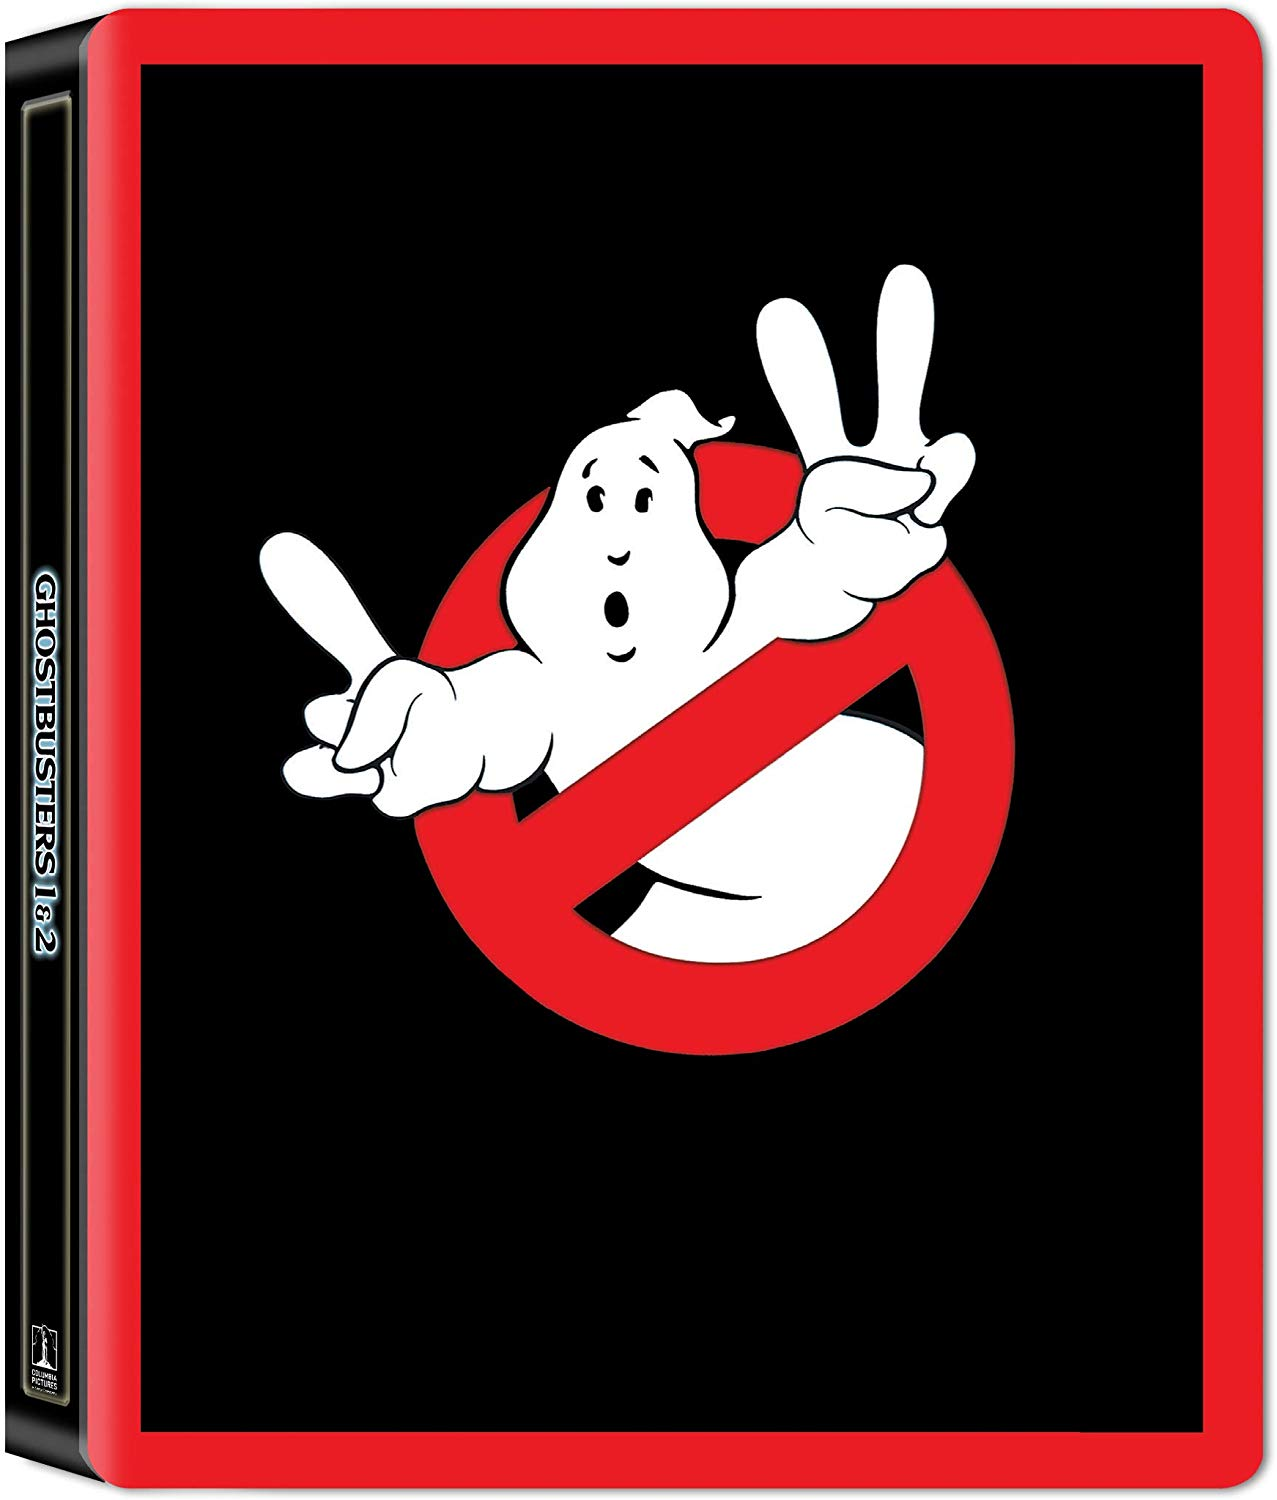 Ghostbusters/Ghostbusters II 35th Anniversary Limited.